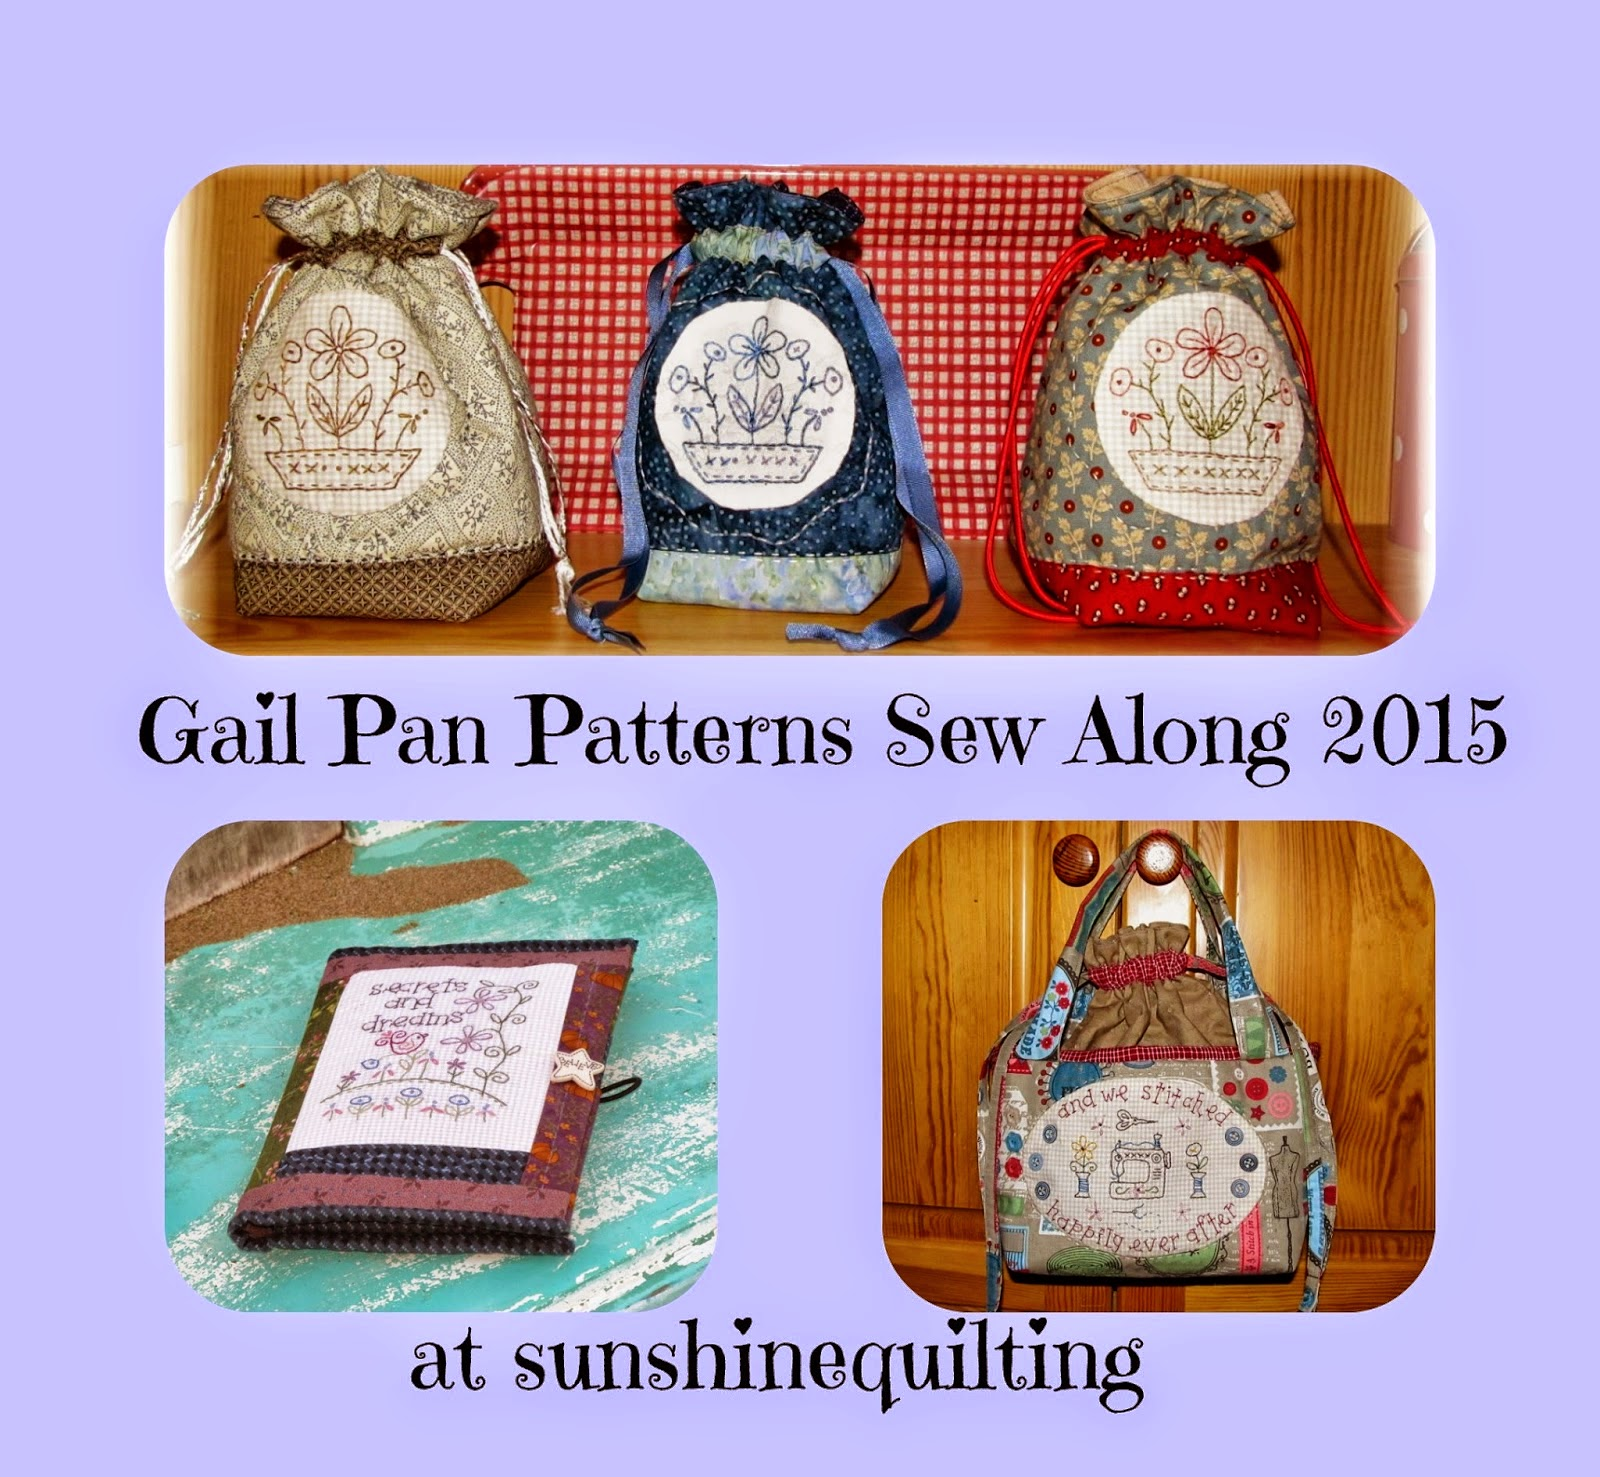 Gail Pan Patterns SAL 2015